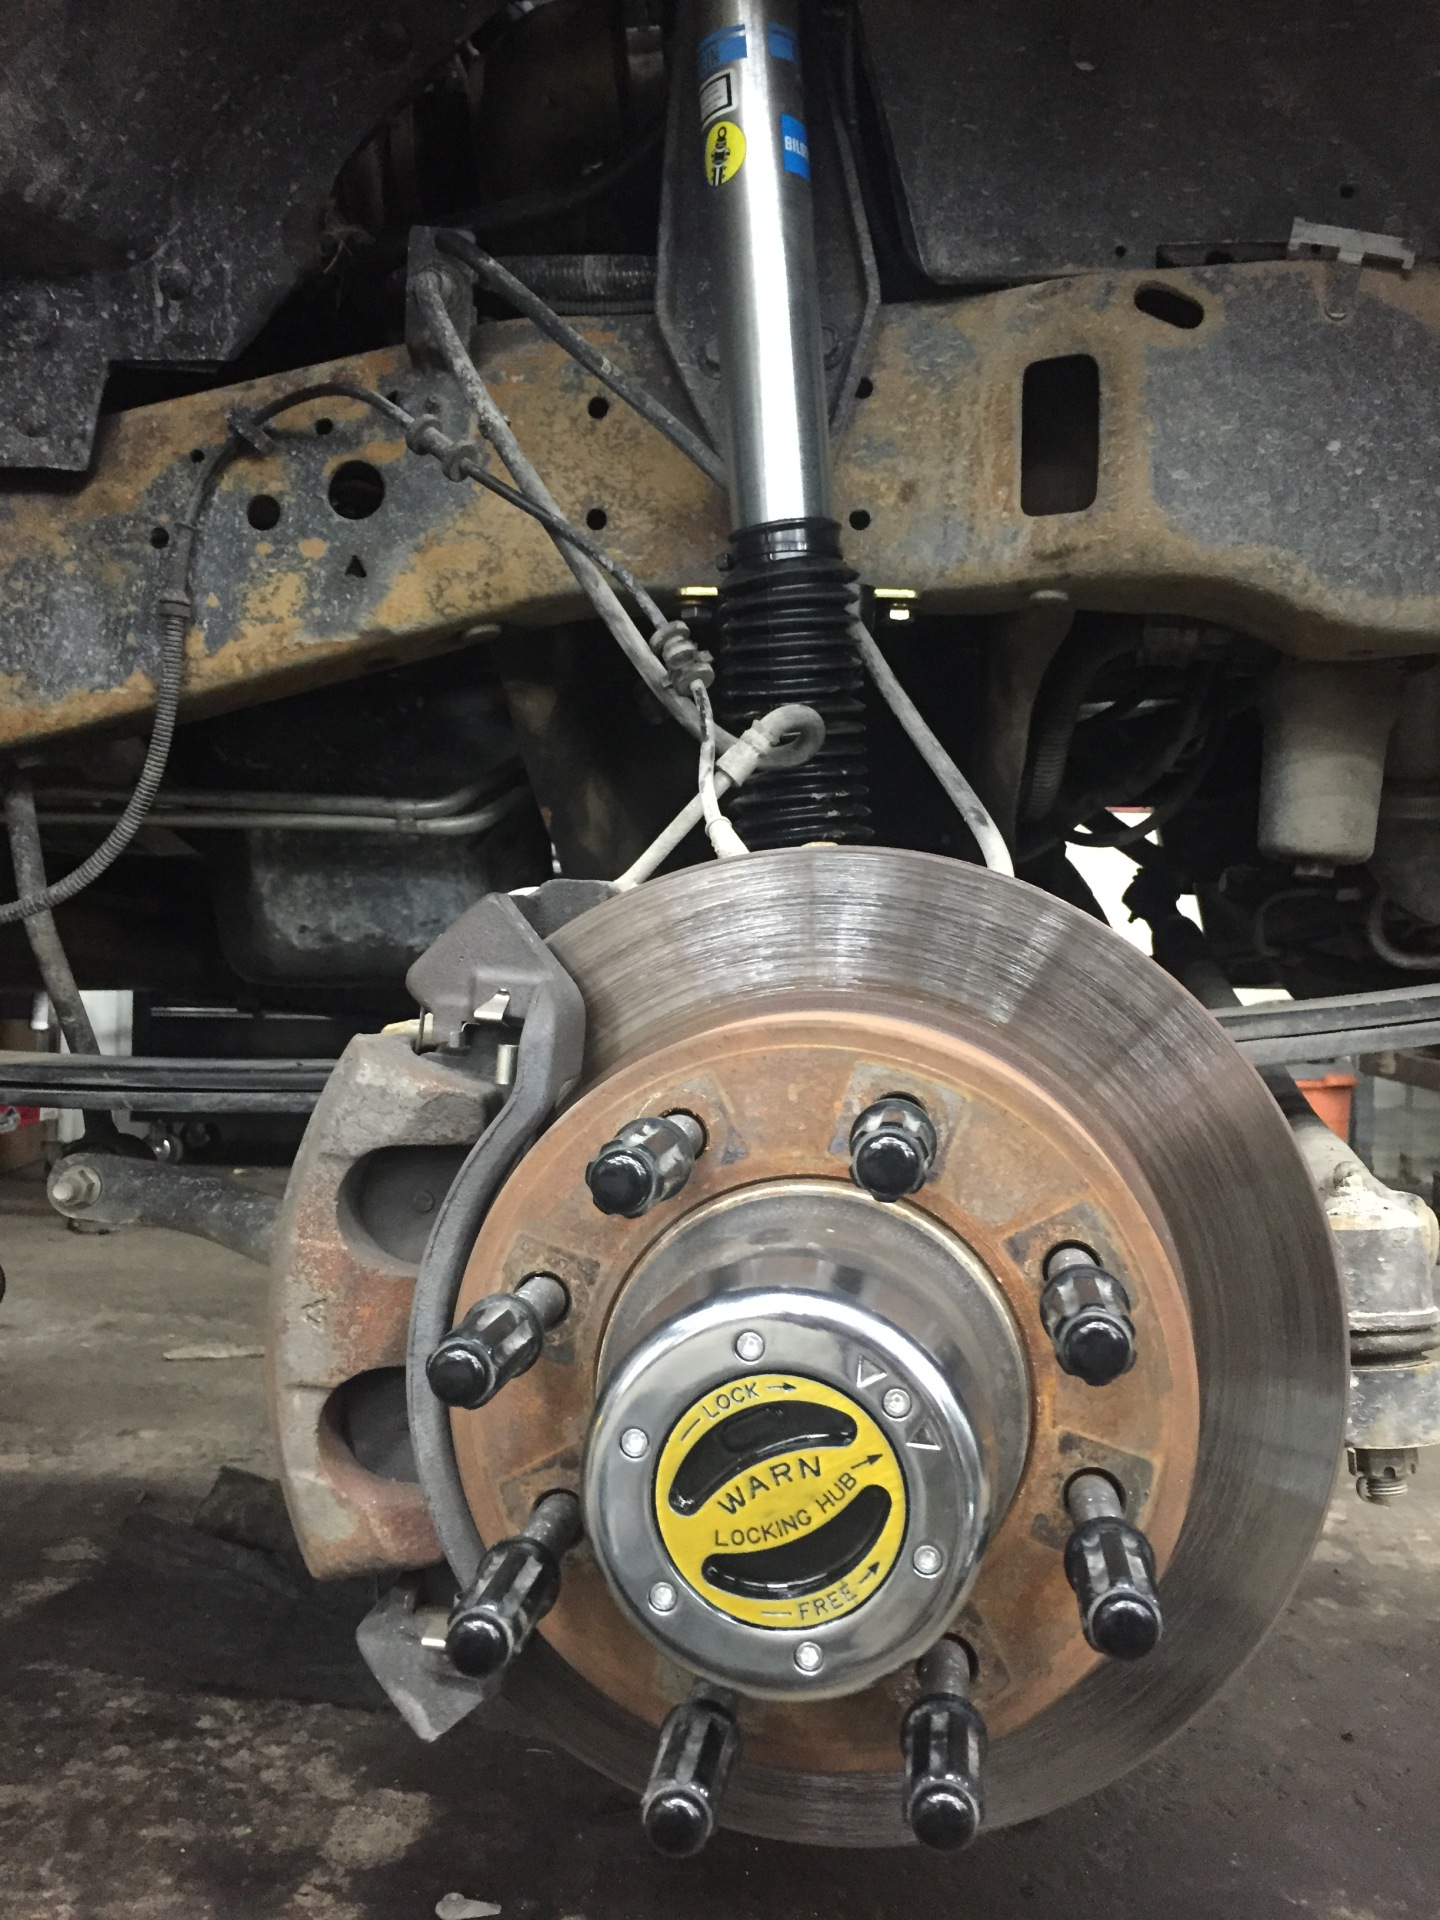 Upgrades to the Puller